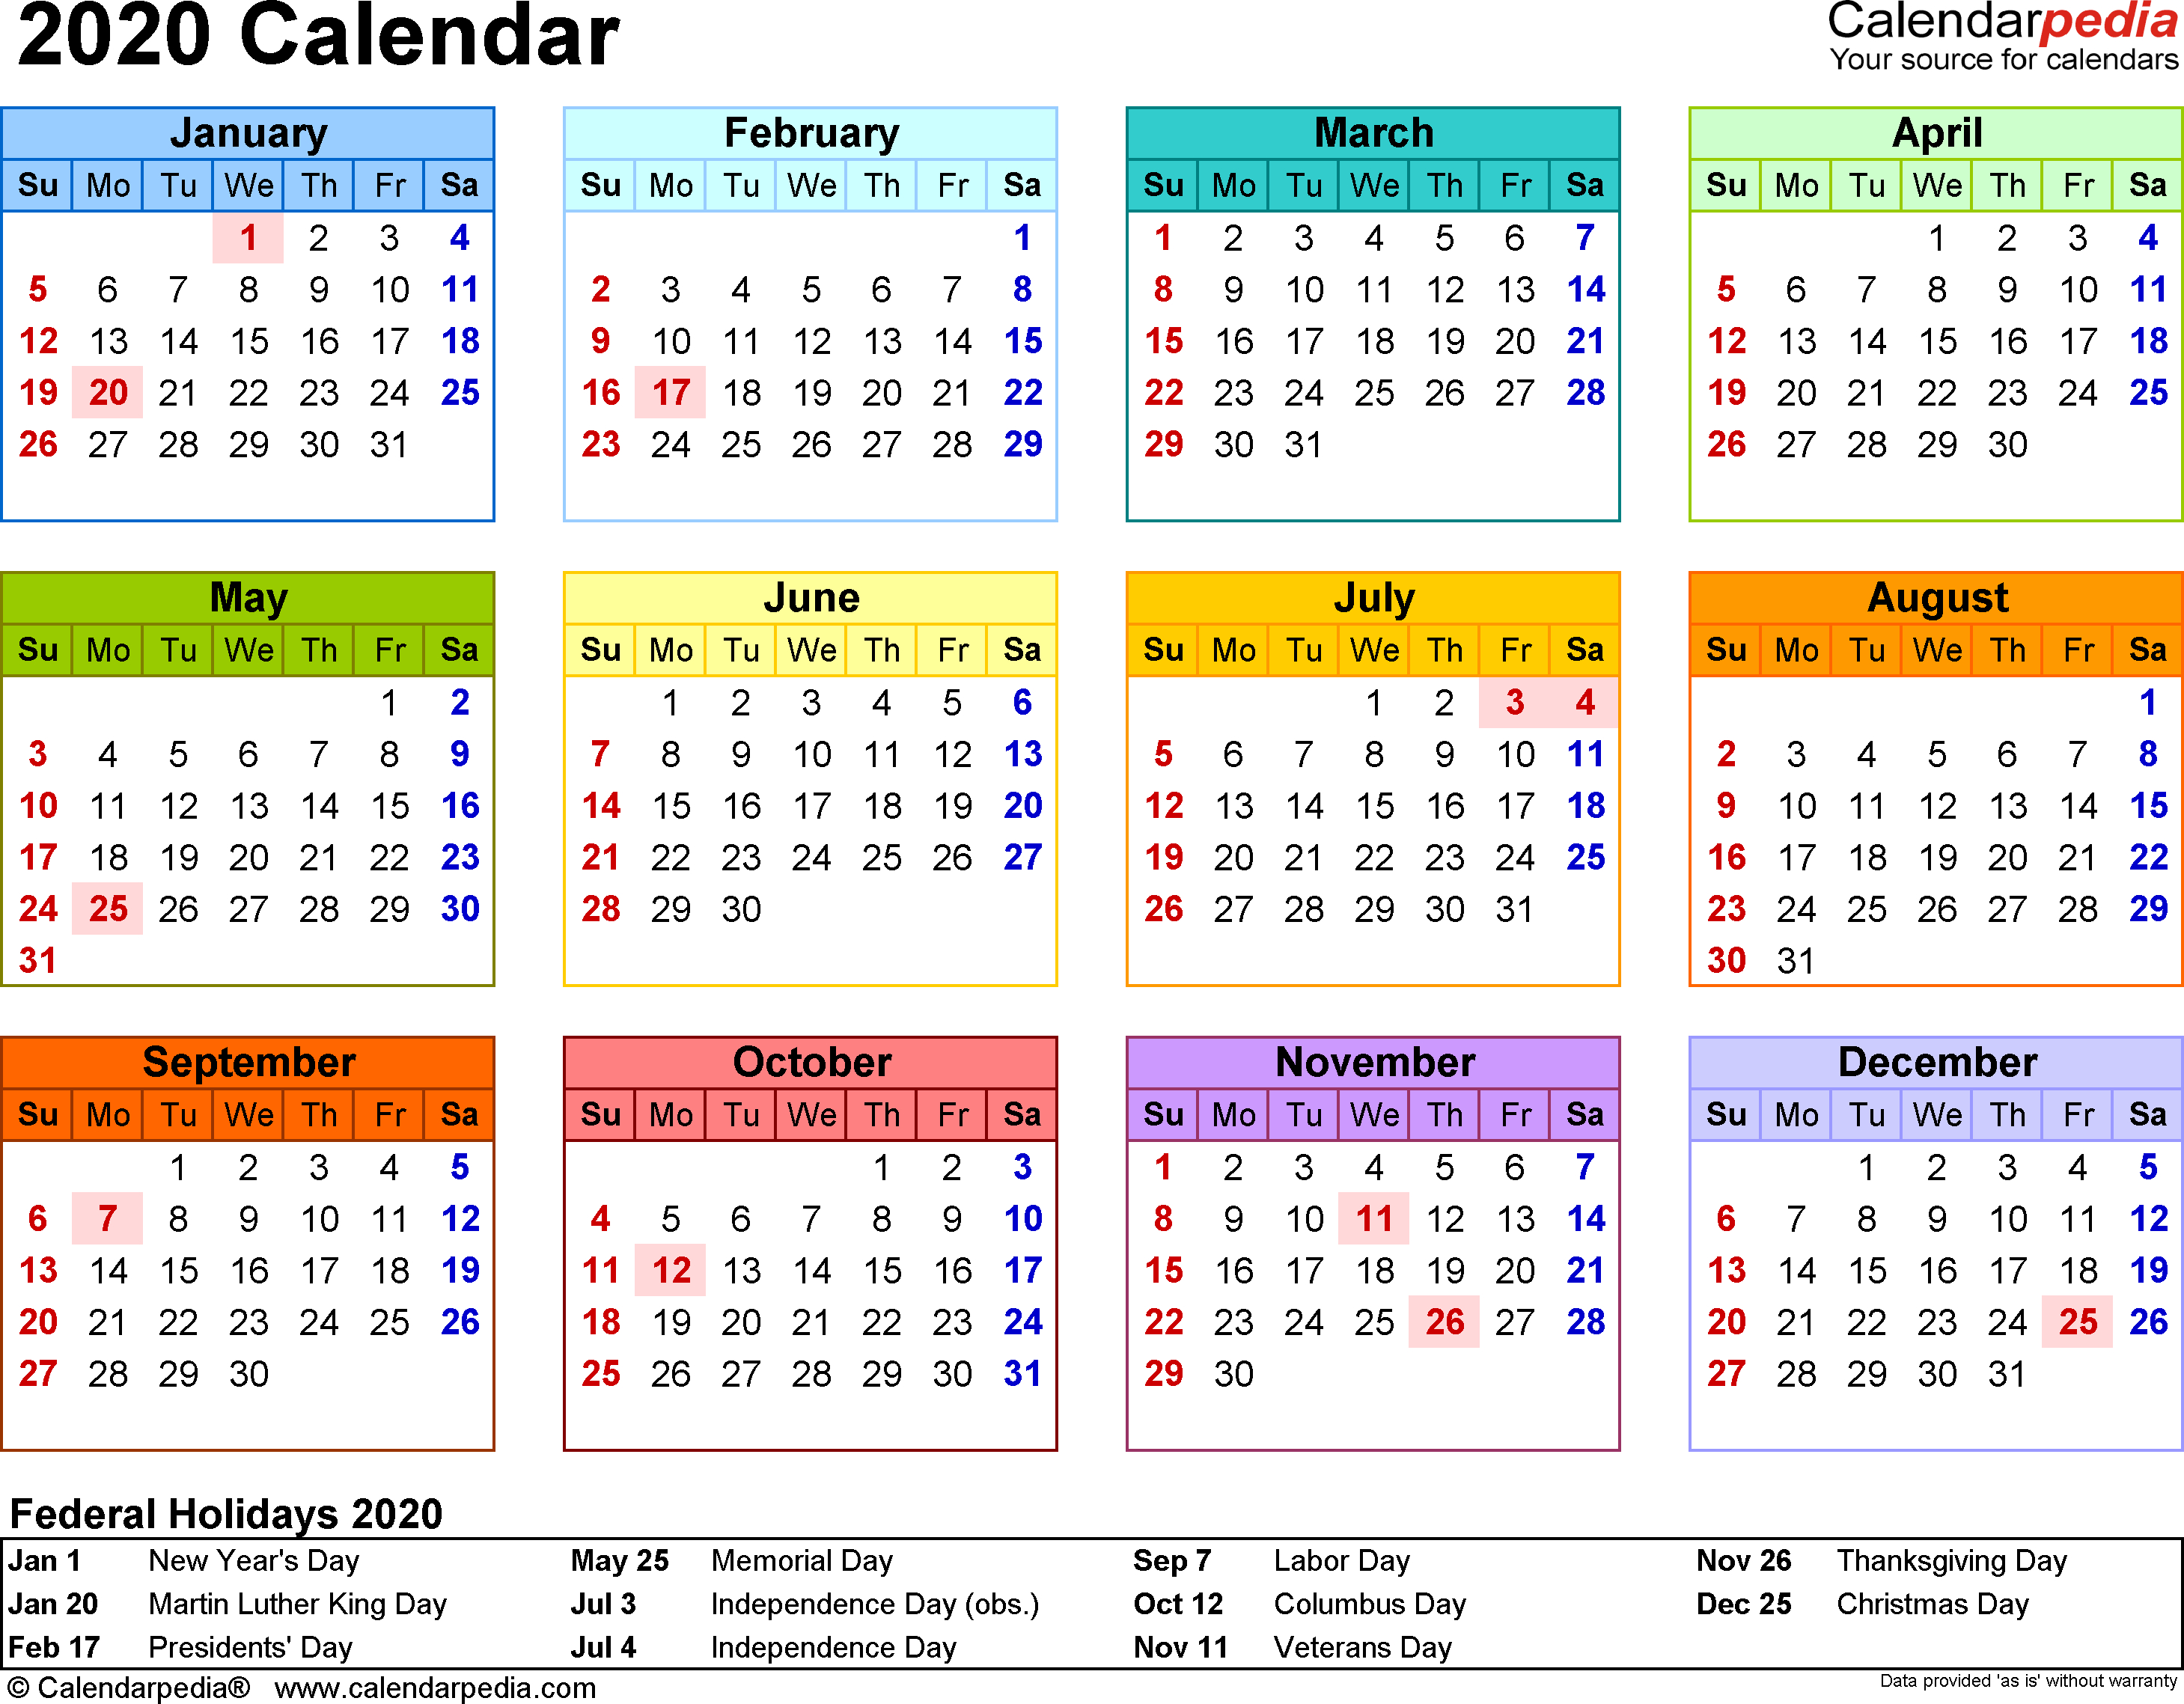 2020 Calendar Pdf - 17 Free Printable Calendar Templates intended for Year At A Glance 2020